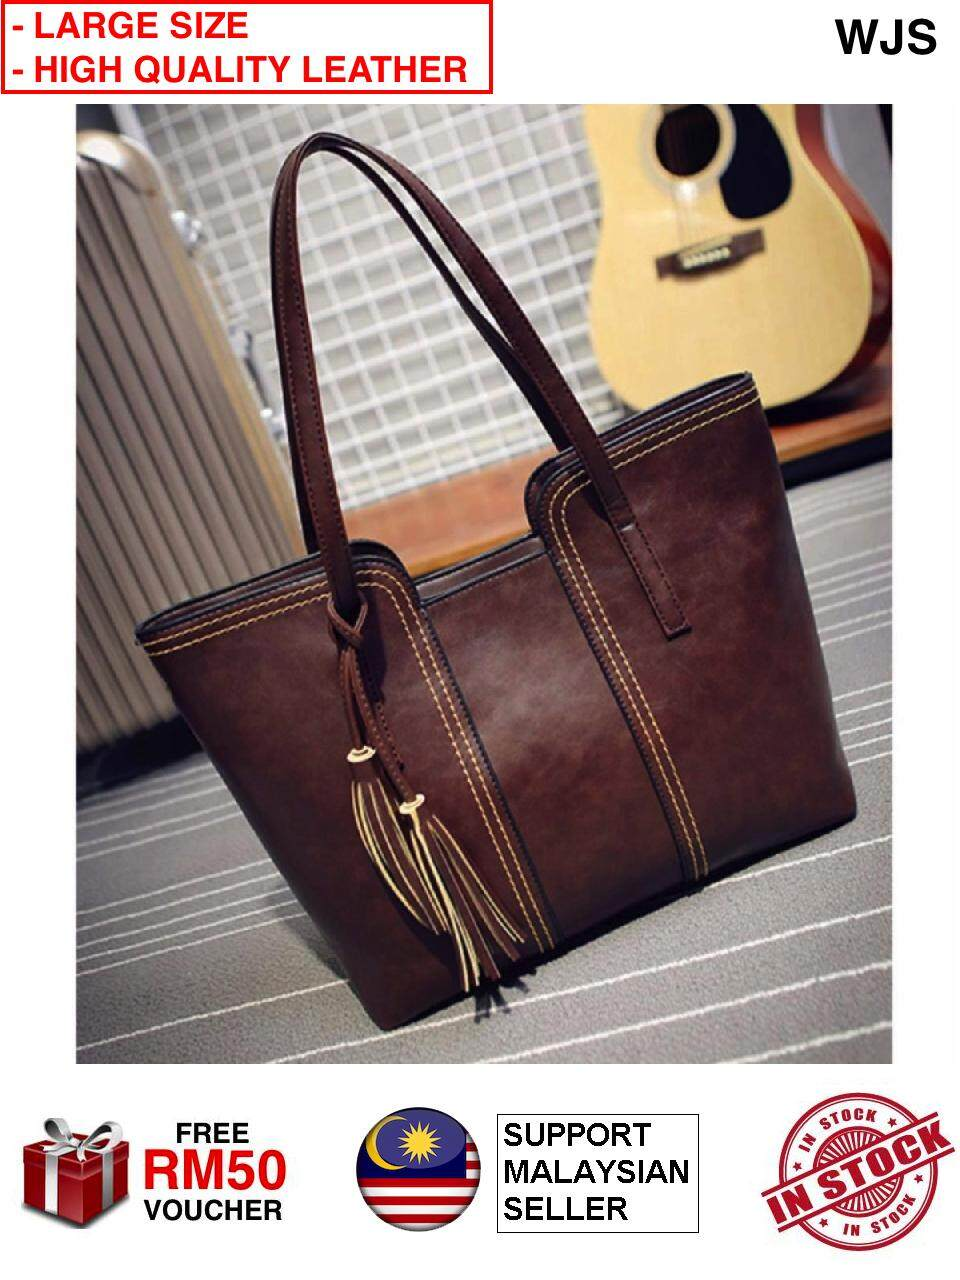 (LARGE QUALITY LEATHER) WJS Lady Tassel Handbag New Arrival Large Size PU Leather Casual Bag High Quality Leather Hand Bag BROWN (FREE RM50 VOUCHER)